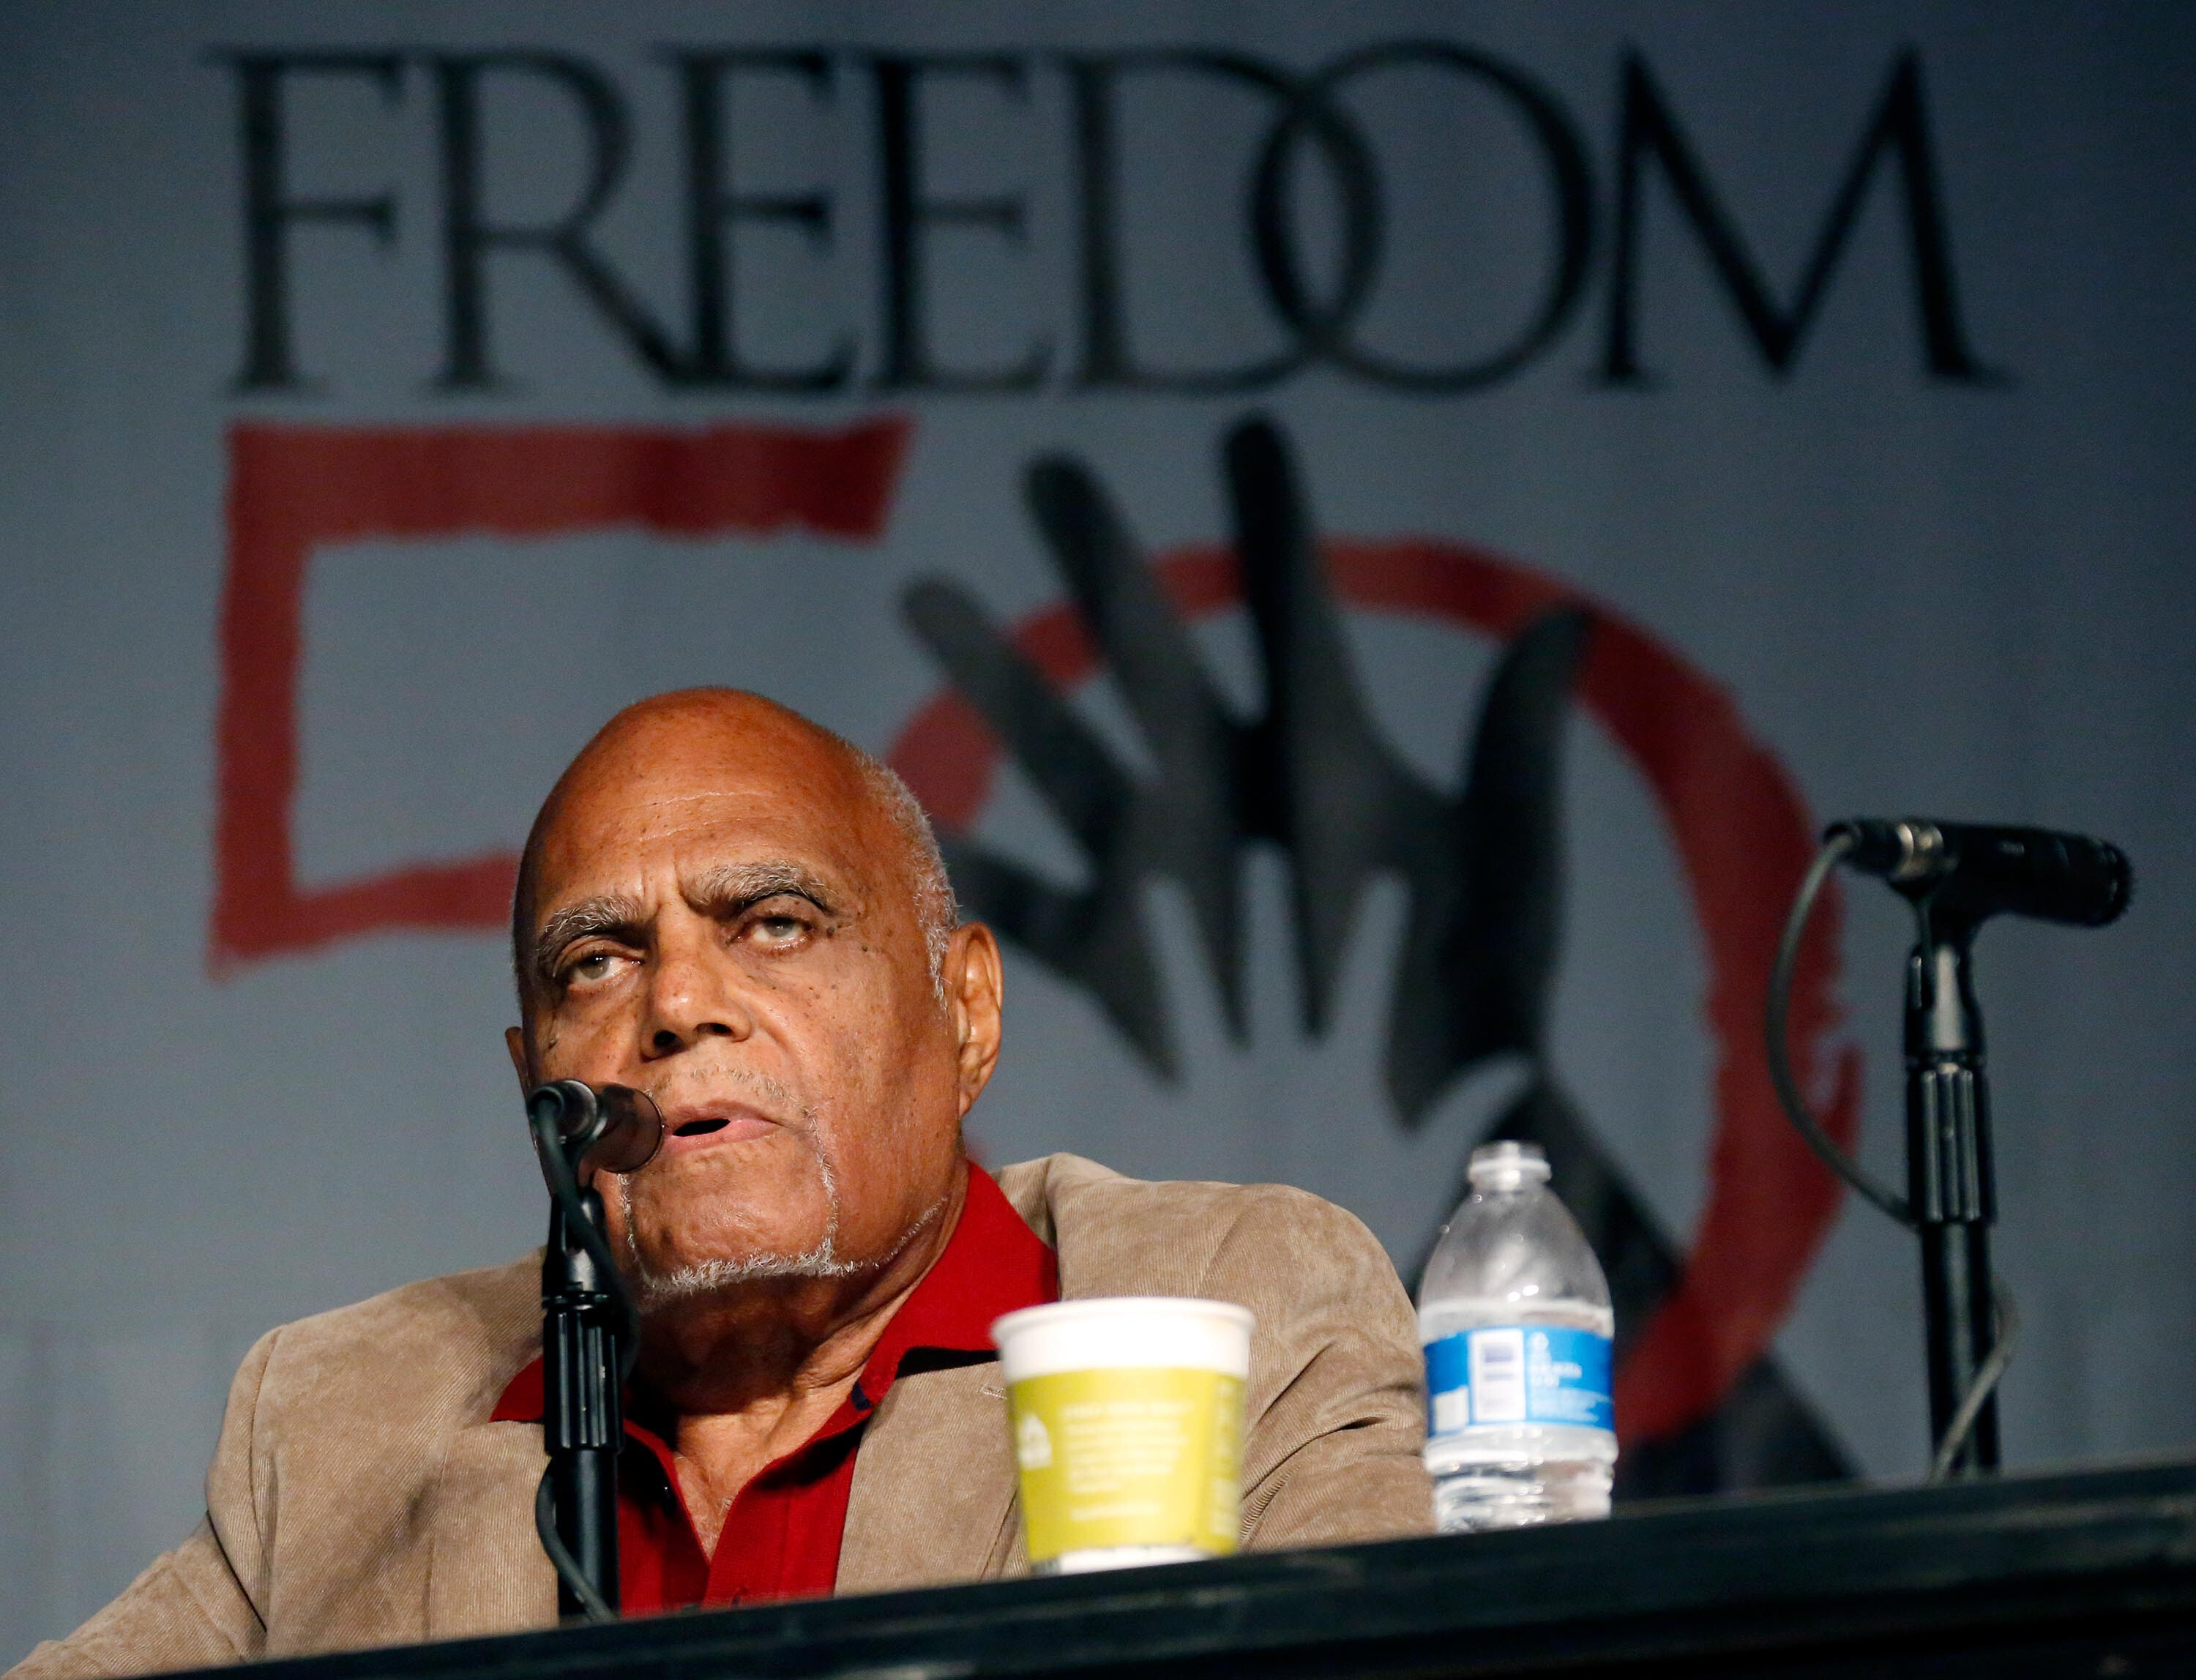 Bob Moses's heroic fight for voting rights should inspire today's movement, civil rights leaders say